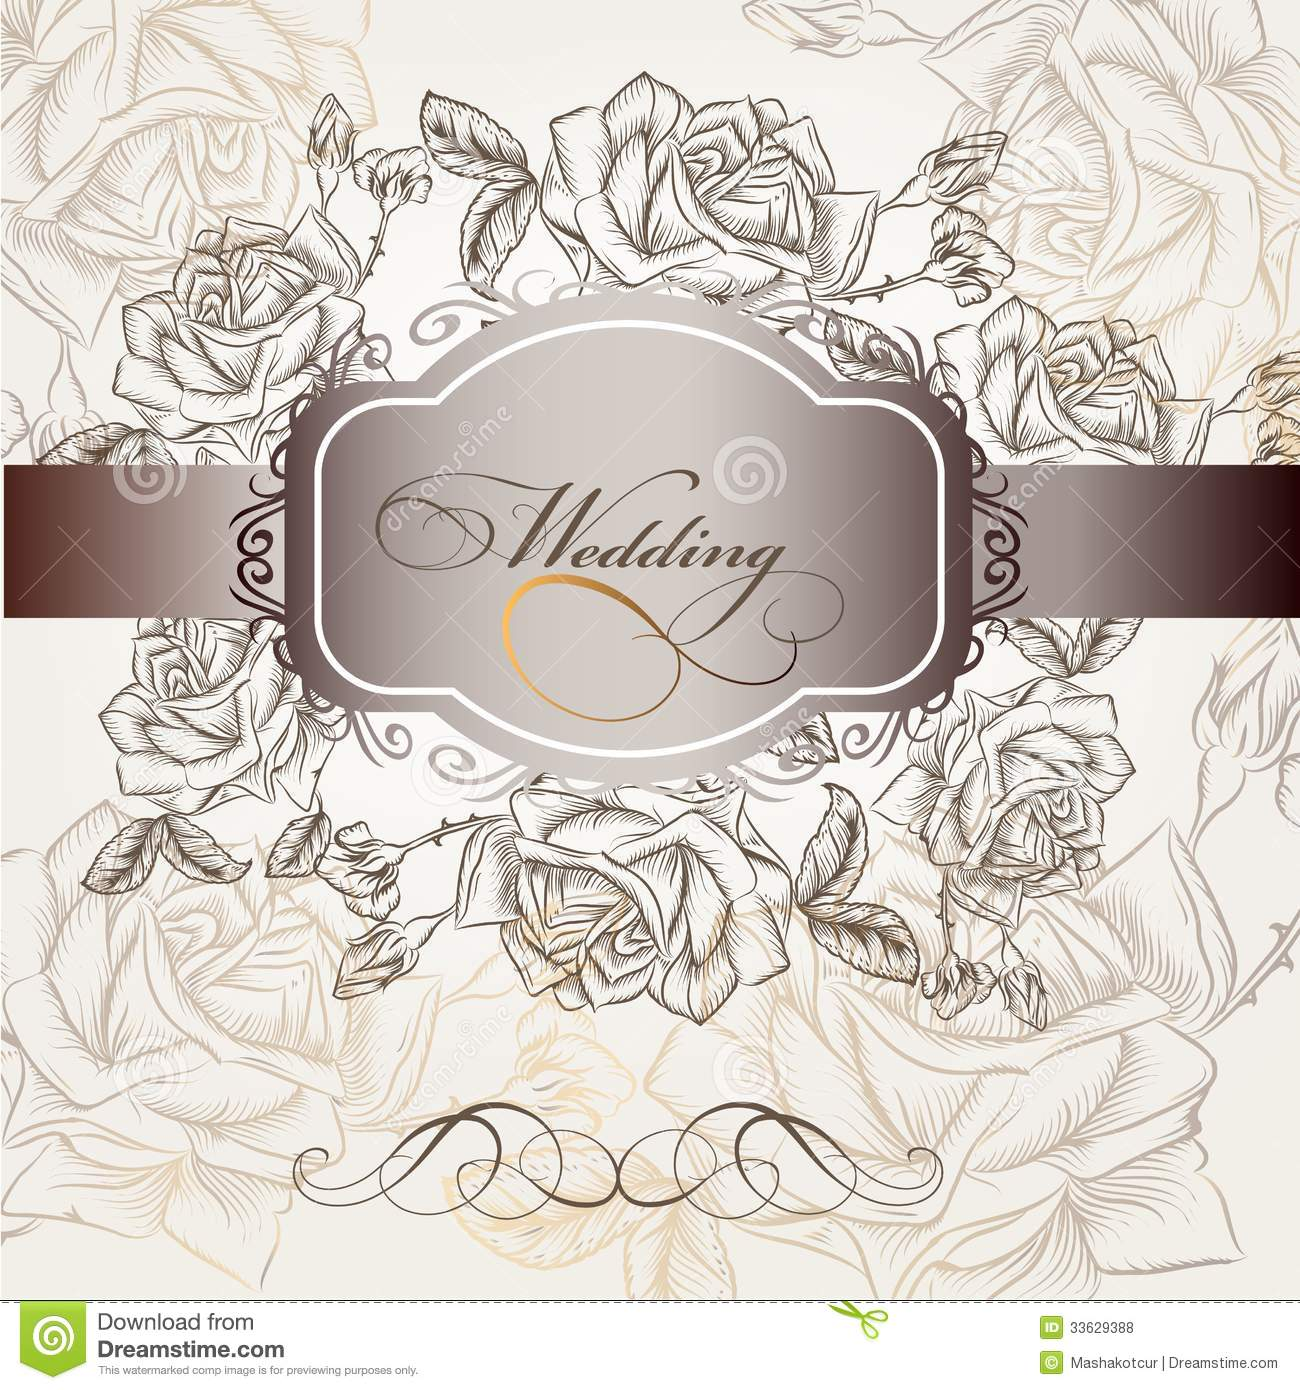 Wedding invitation in elegant style with roses stock vector wedding invitation in elegant style with roses stopboris Image collections